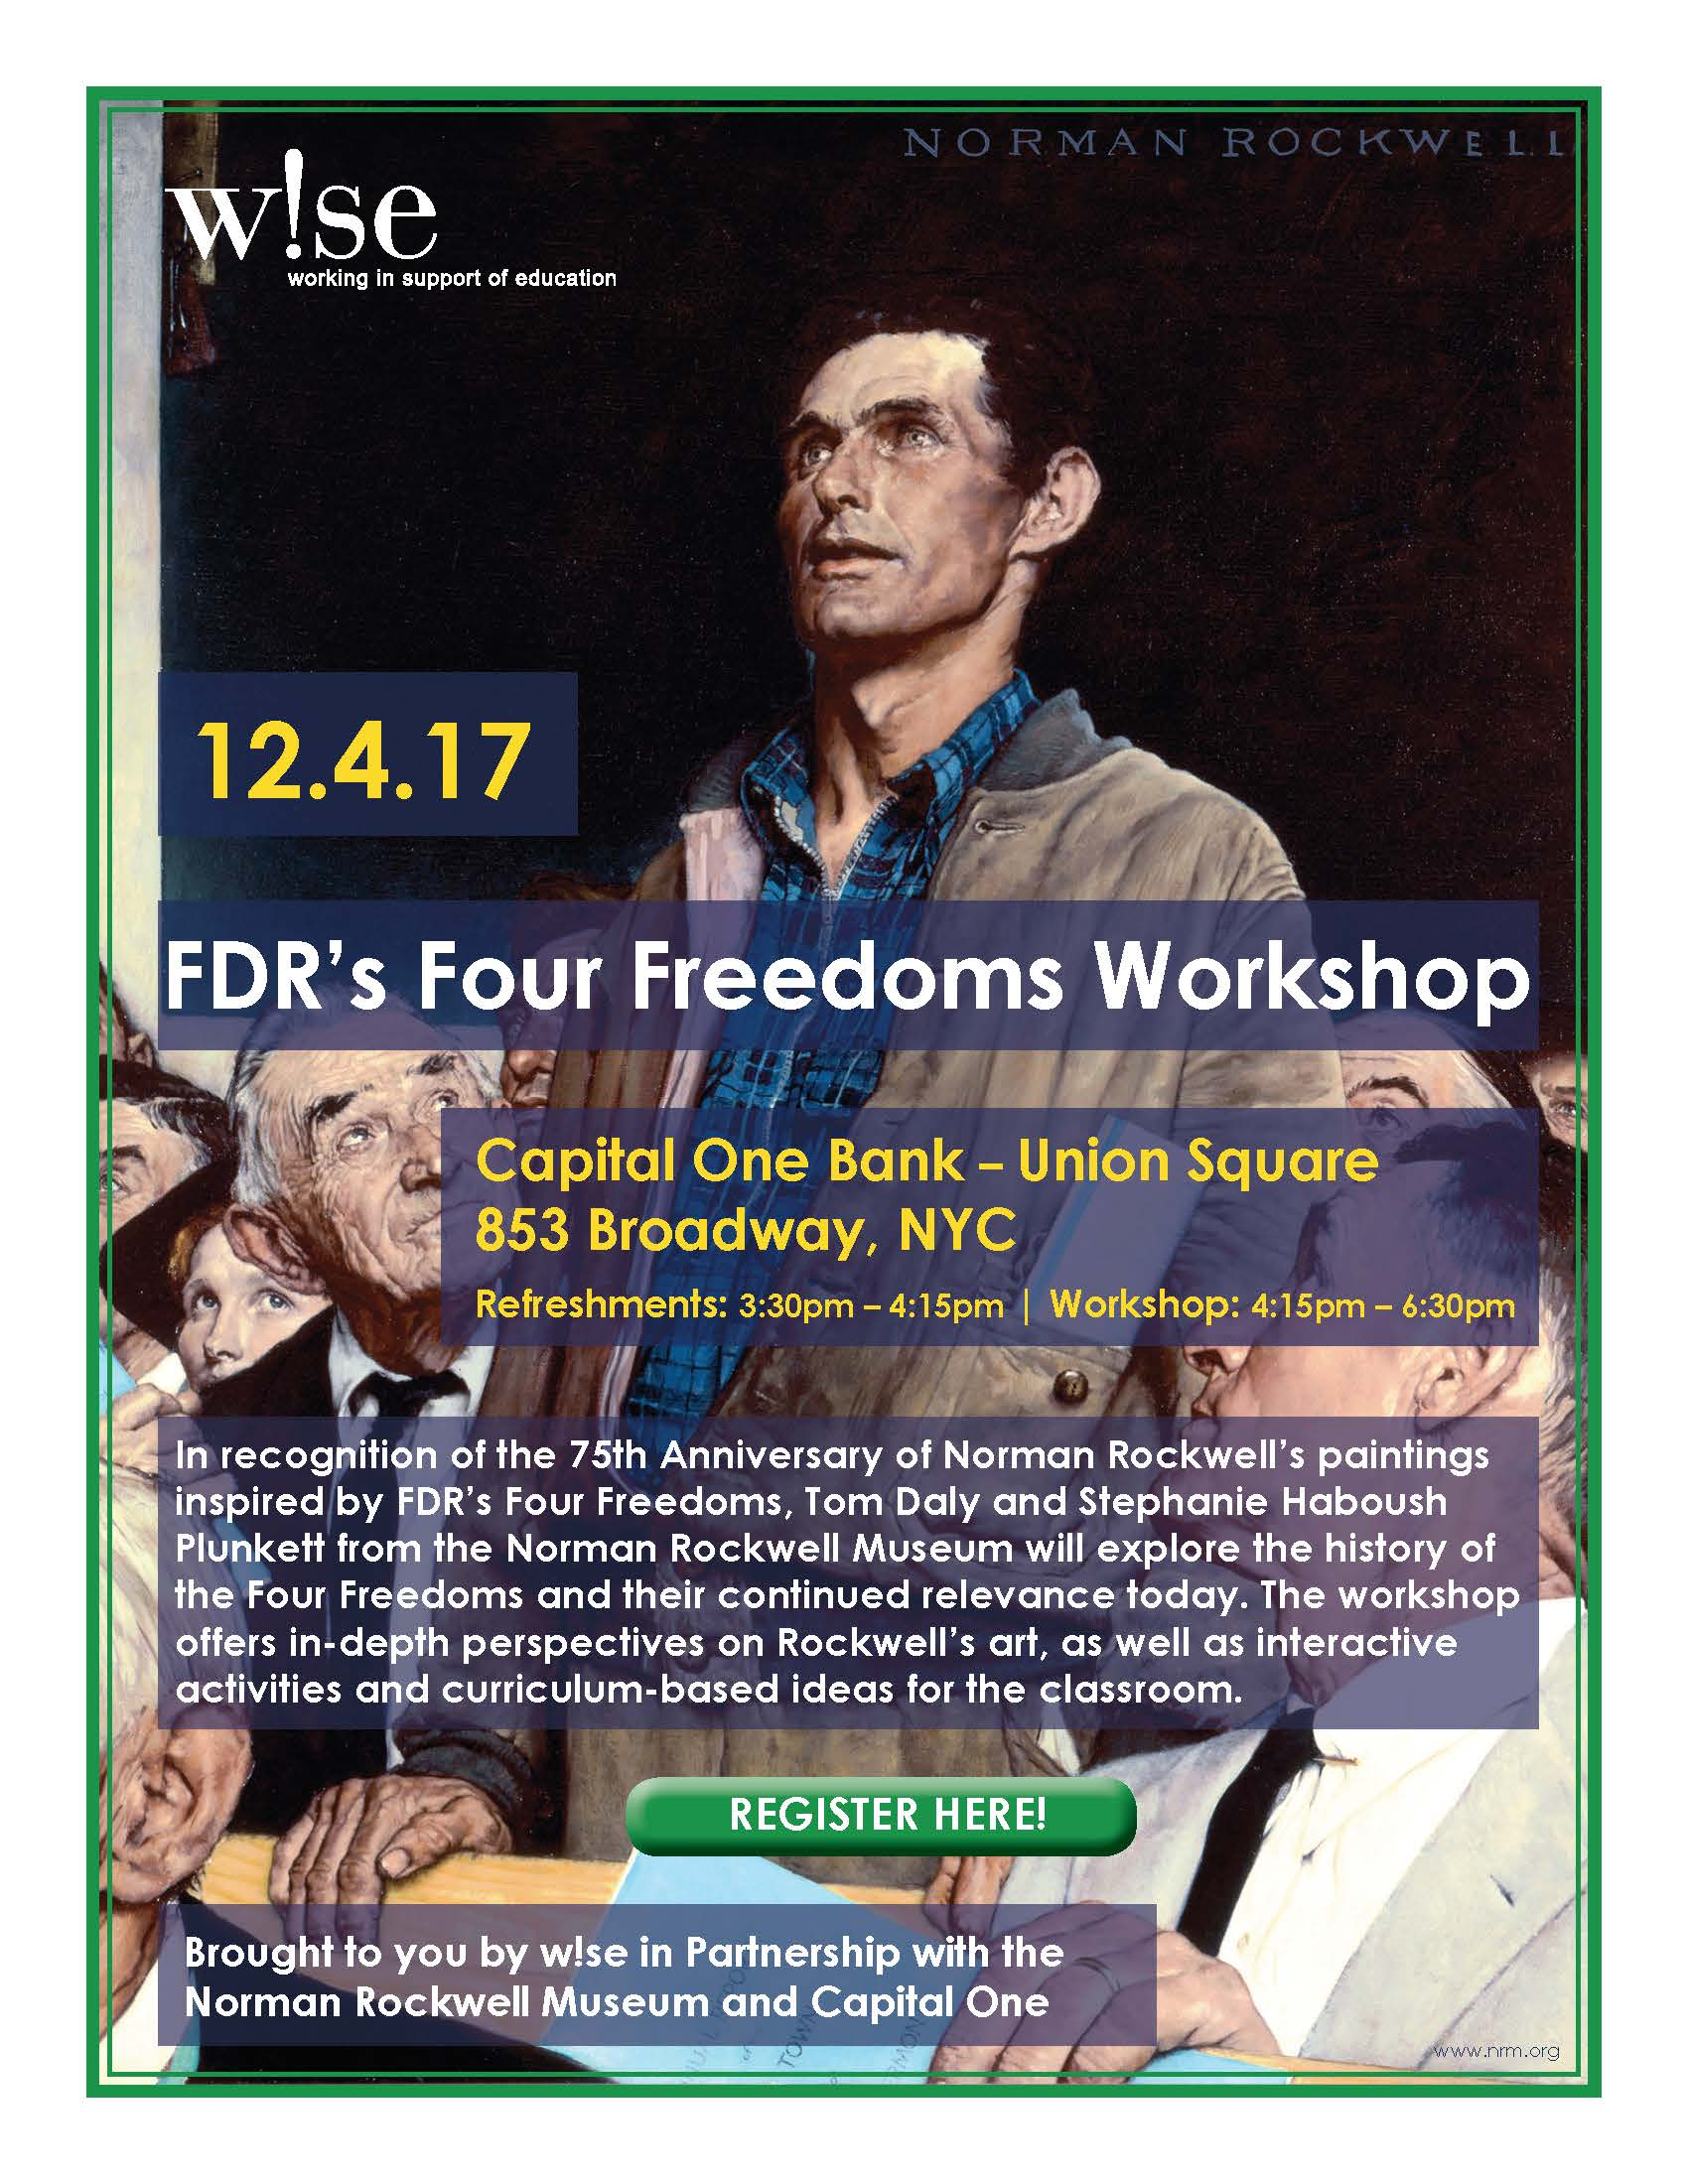 FDR's 4 Freedoms Workshop